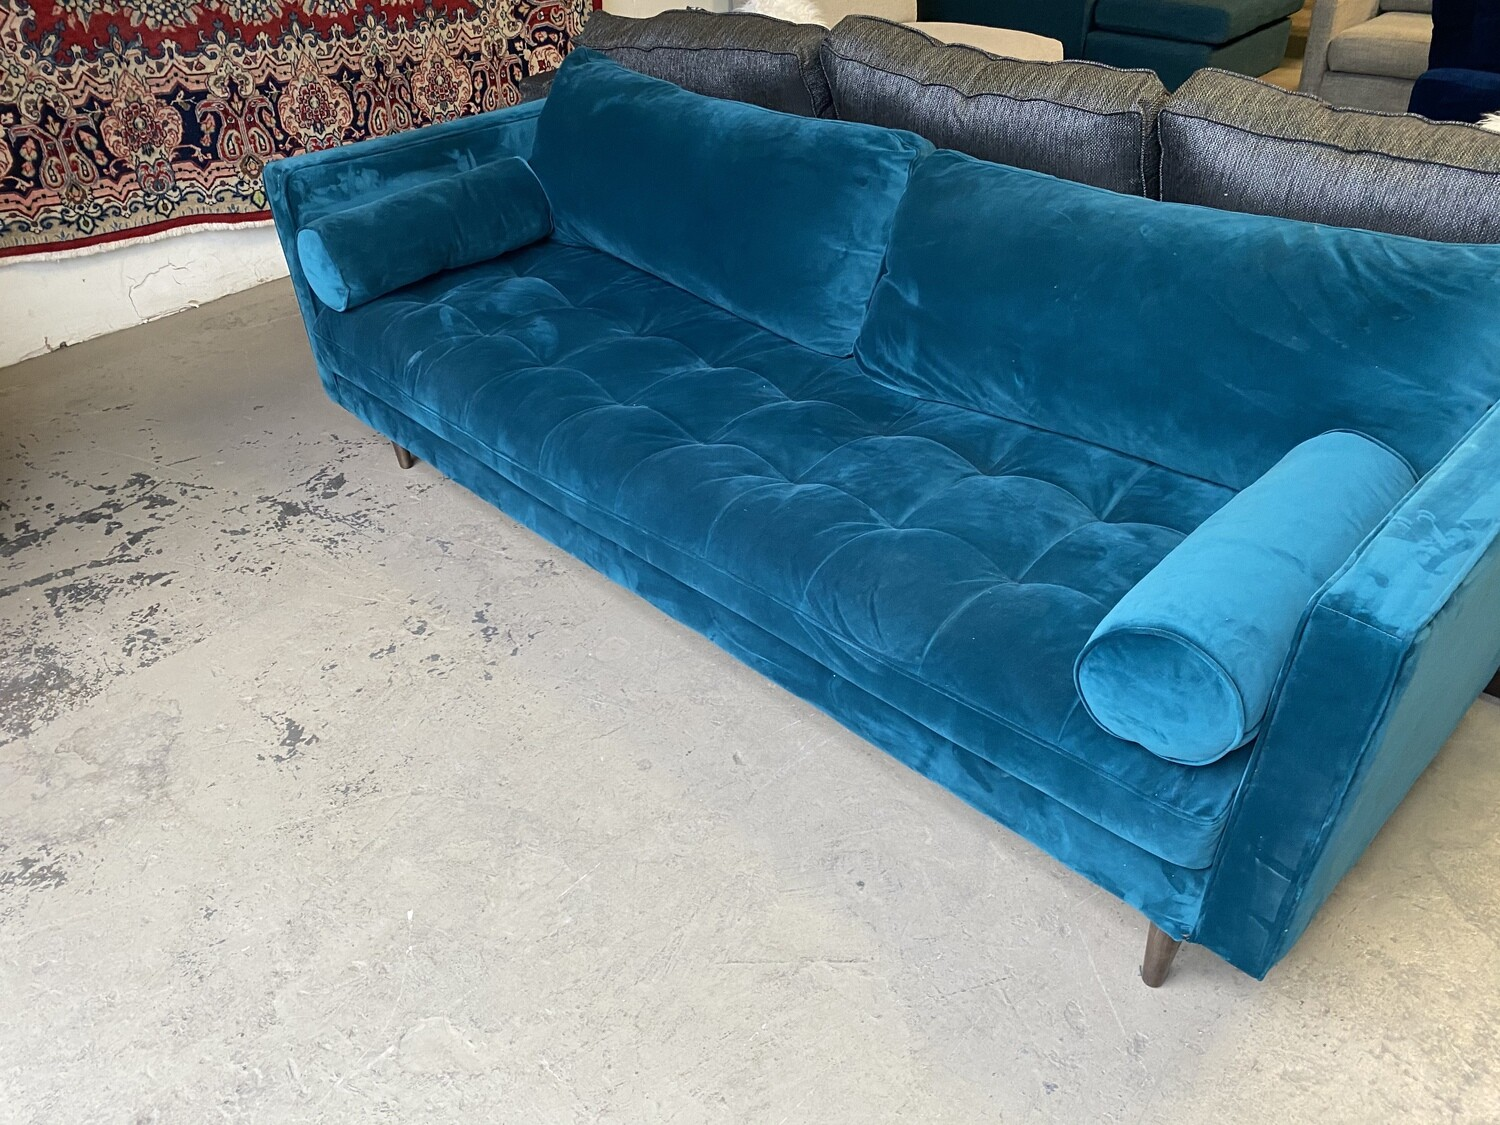 JB Briar Sofa 2172 (Royale Peacock)